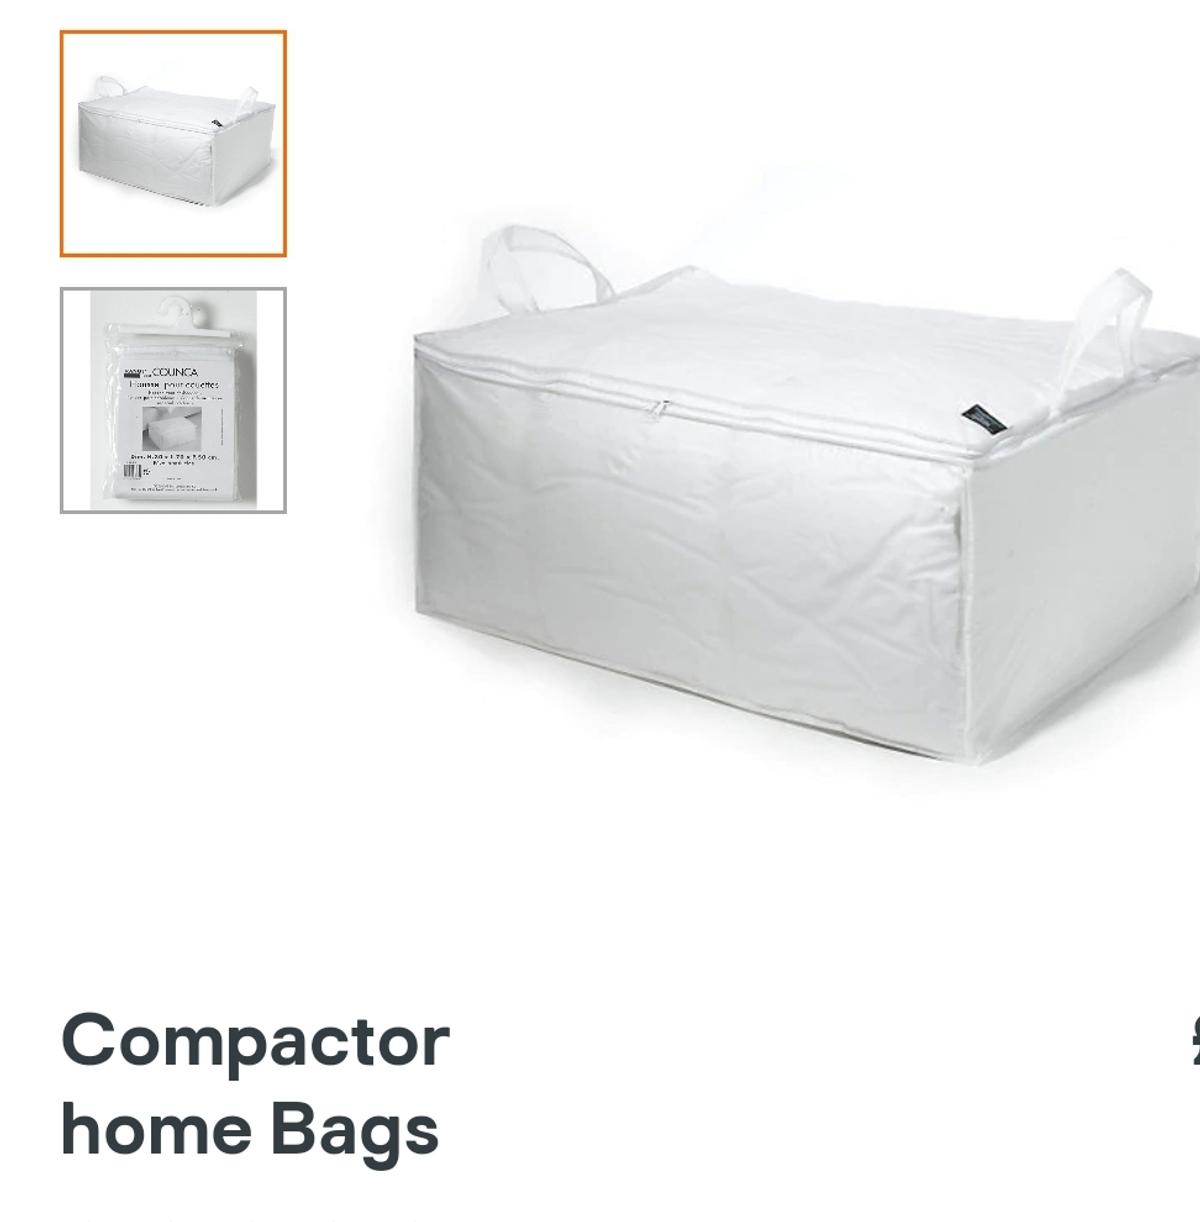 compactor home bags under bed storage I have 7 available (W)700mm (H)300mm (D)50cm only £5 each collection only